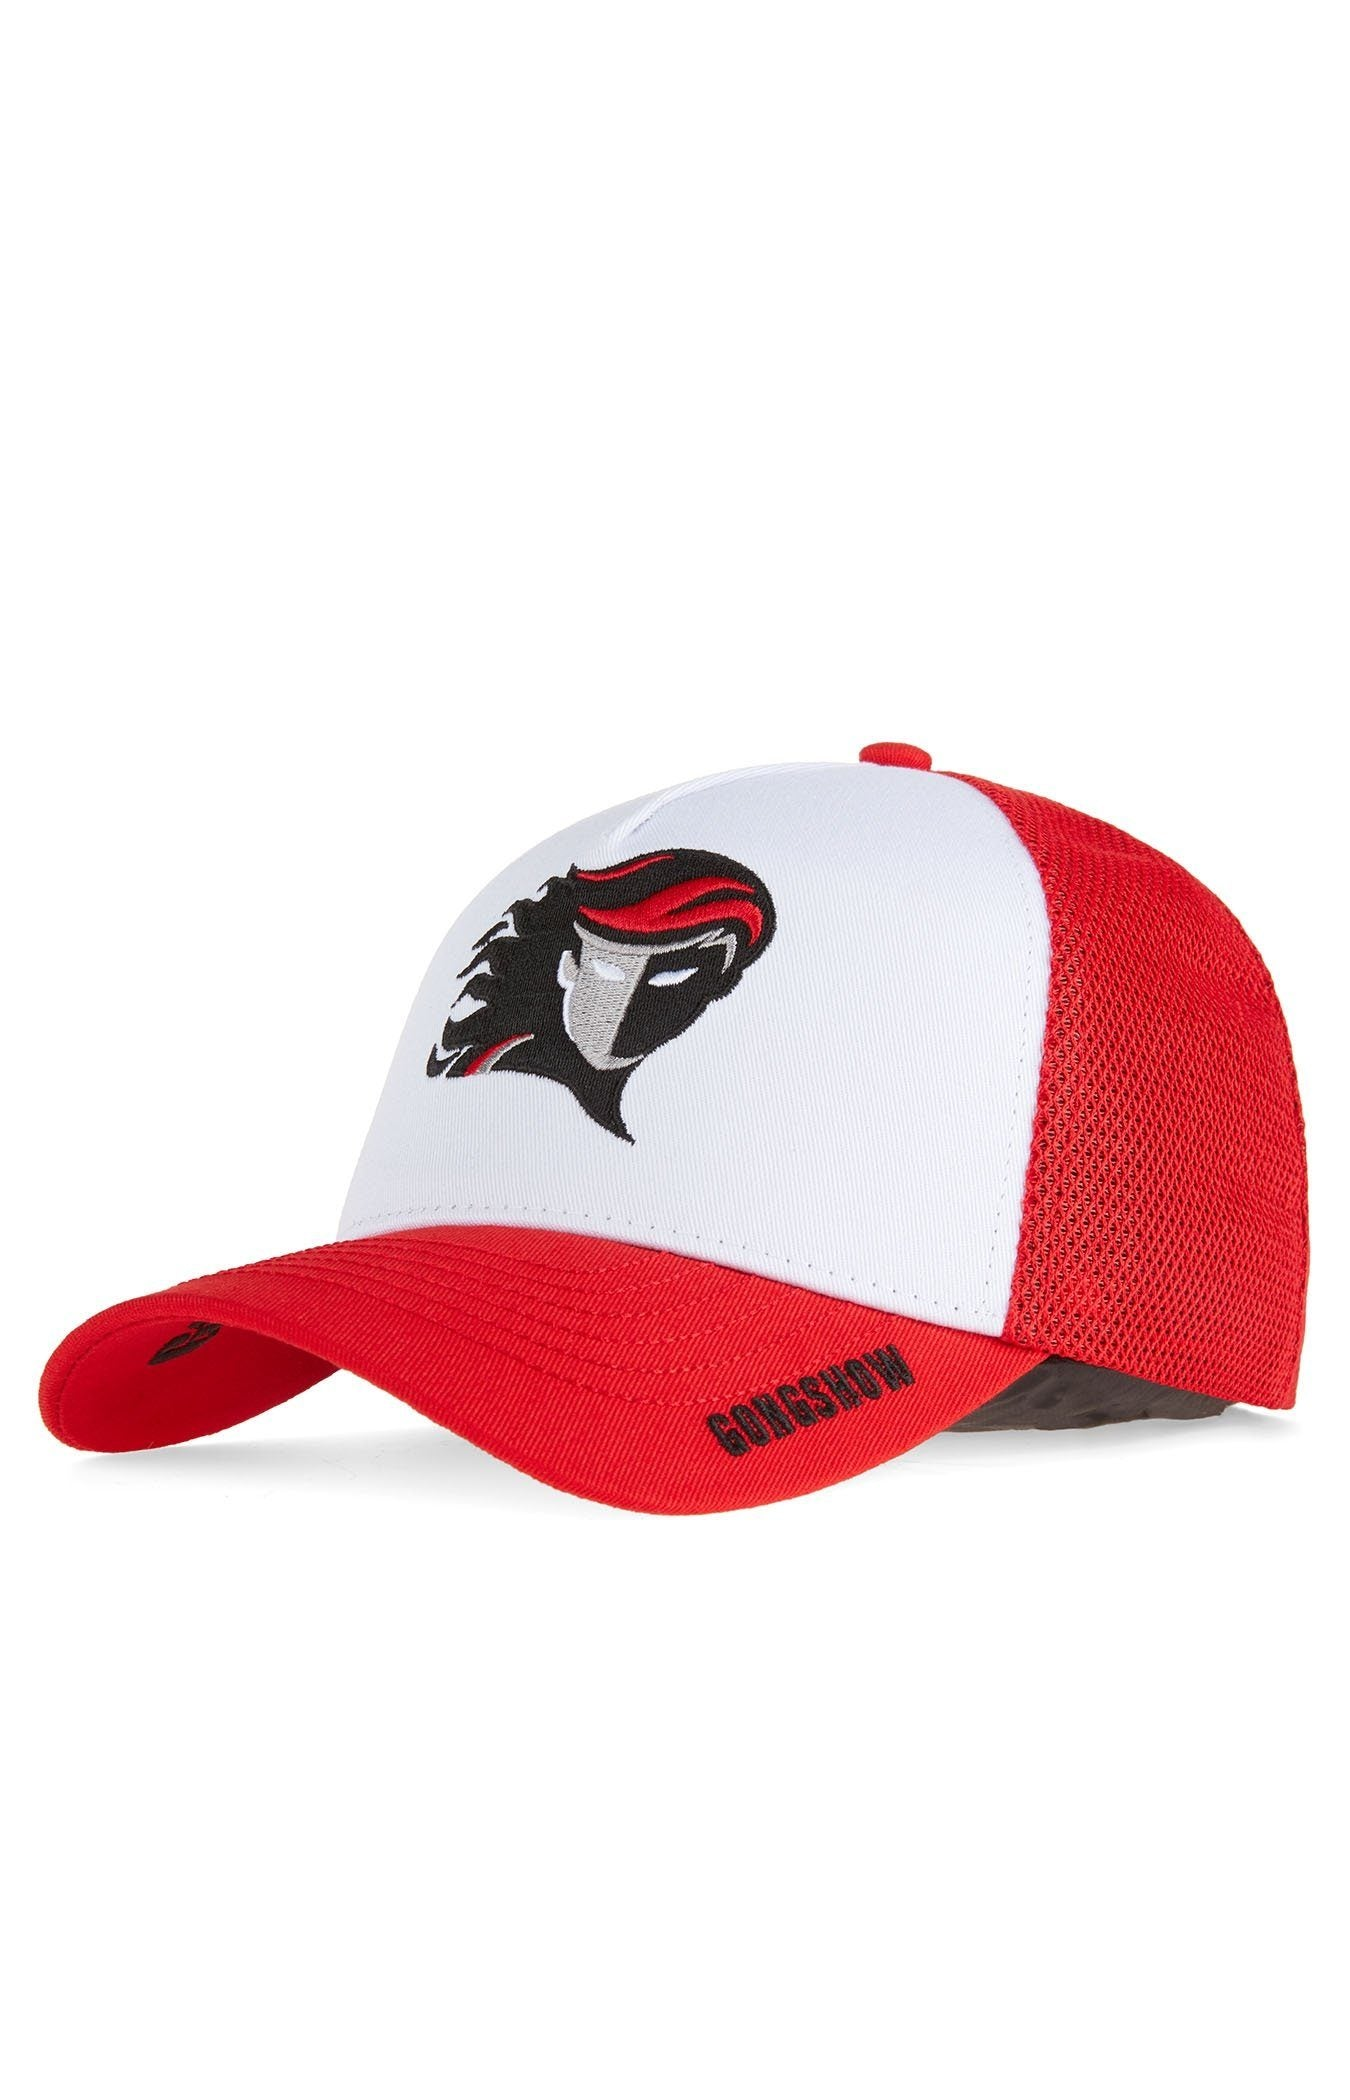 Gongshow Official CWHL Calgary Inferno Womens Hockey Hat – GONGSHOW ... 2017c977ad